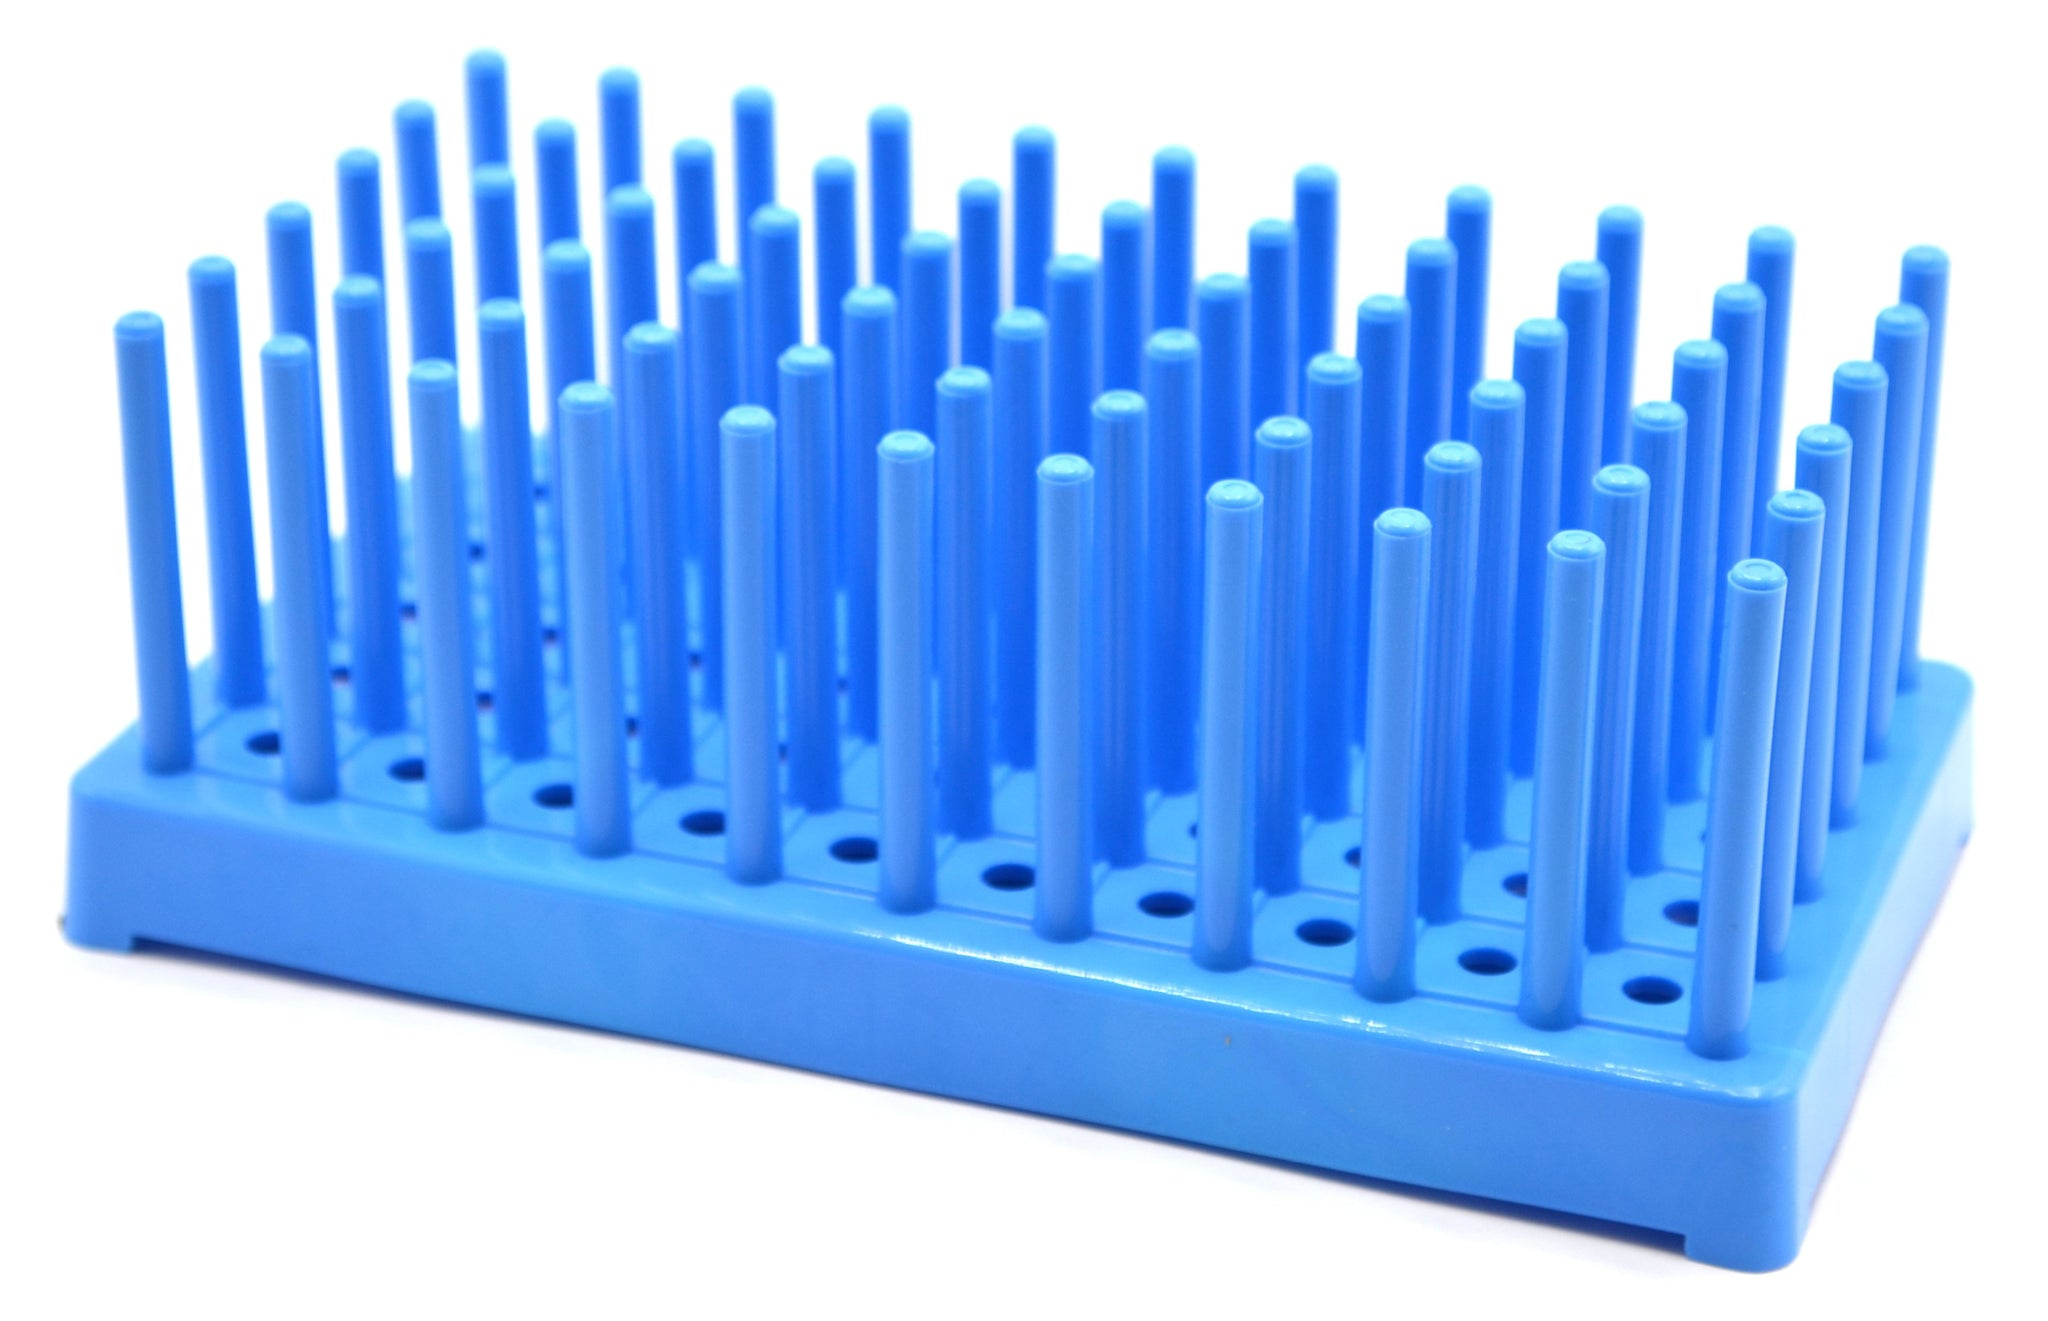 Blue Plastic Test Tube Peg Drying Rack Holds 50 16mm Test Tubes - Eisco Labs